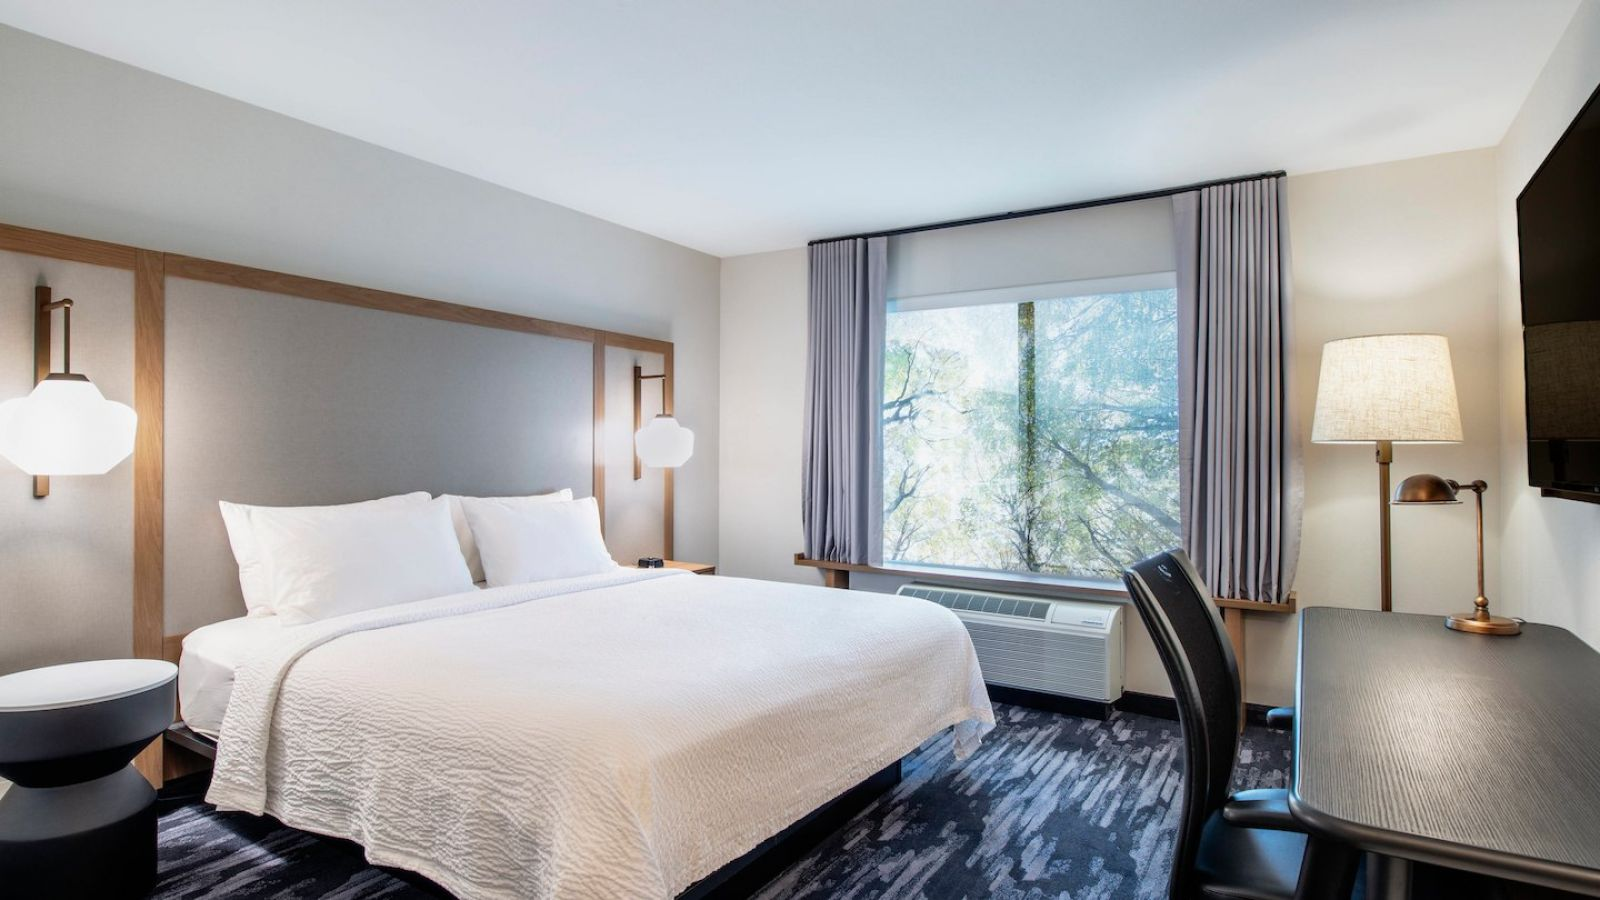 Enjoy complimentary Wi-Fi, a large flat-screen TV and a spacious work desk in our newly renovated king guest room